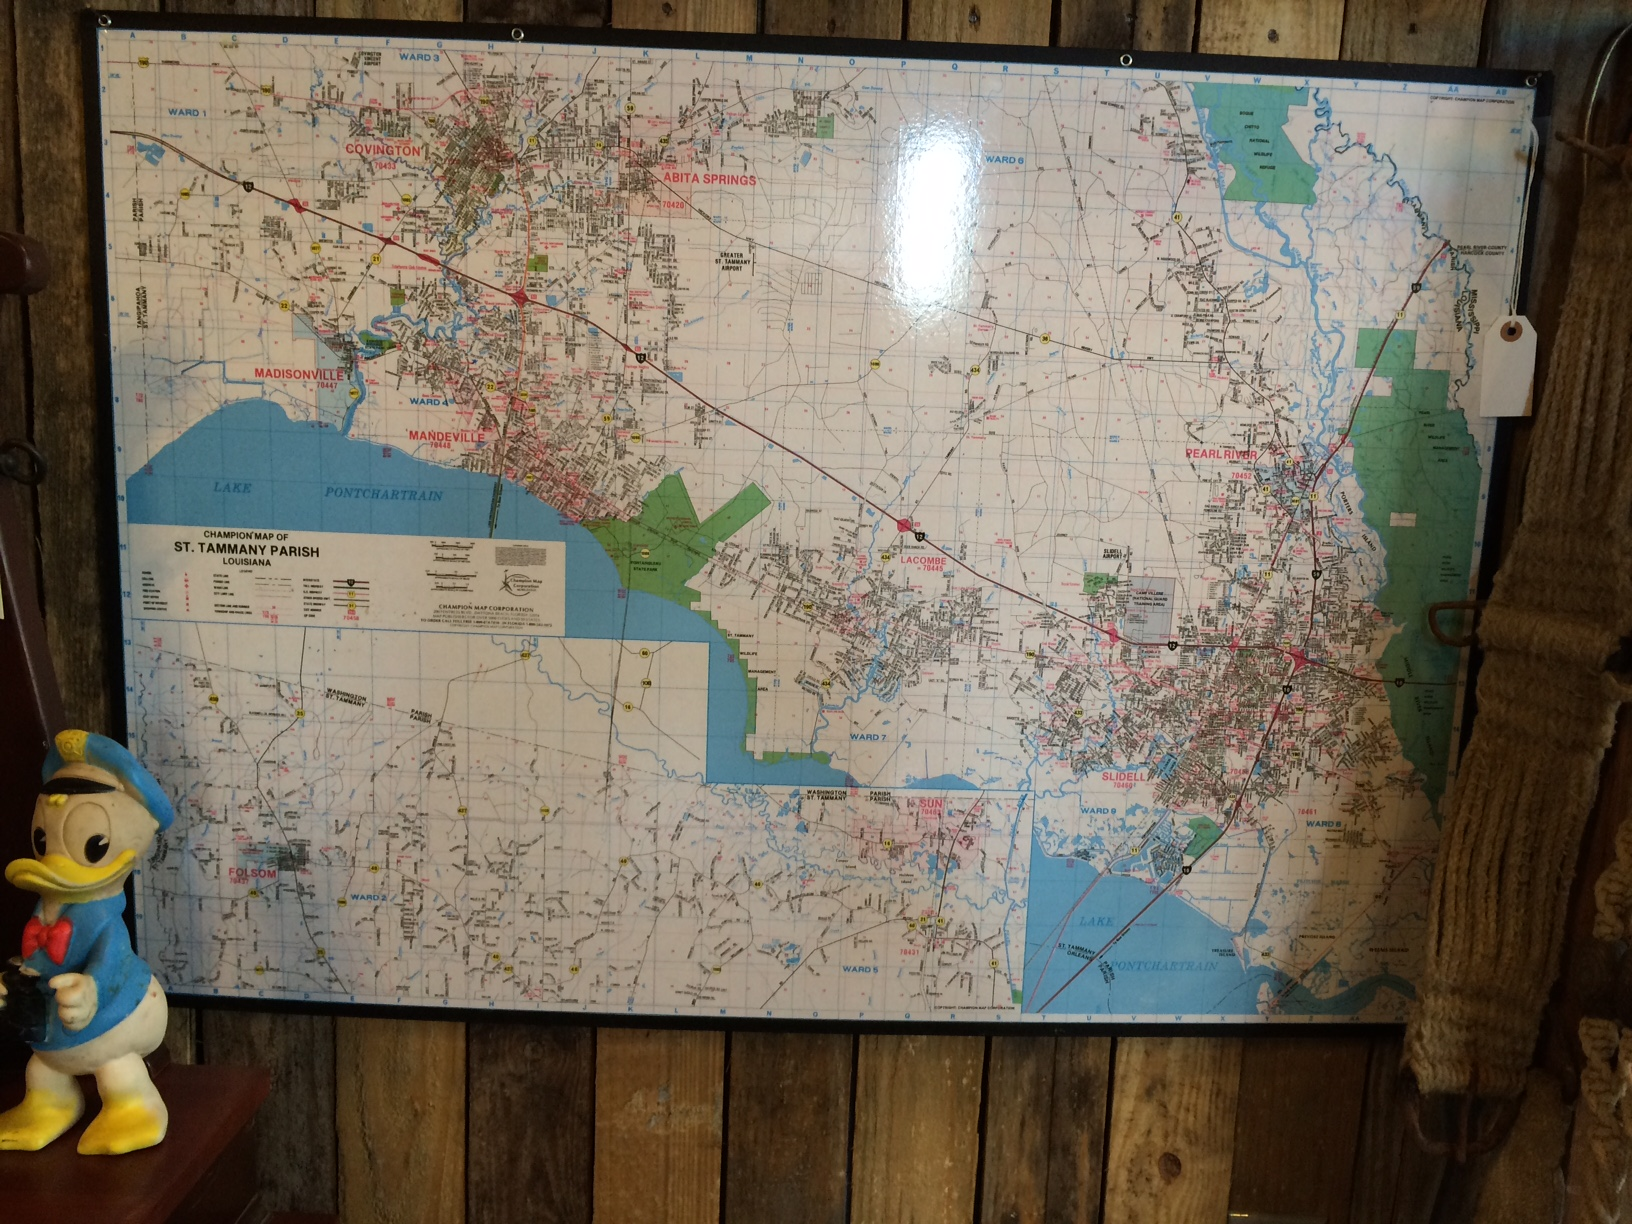 Wall Hangers Archives | Junk's Above on map mirror, map skirt, map accessories, map of downtown denver rtd, map bag, map scrapbook, map chair, map hwy 224 clackamas 32nd, map plastic,